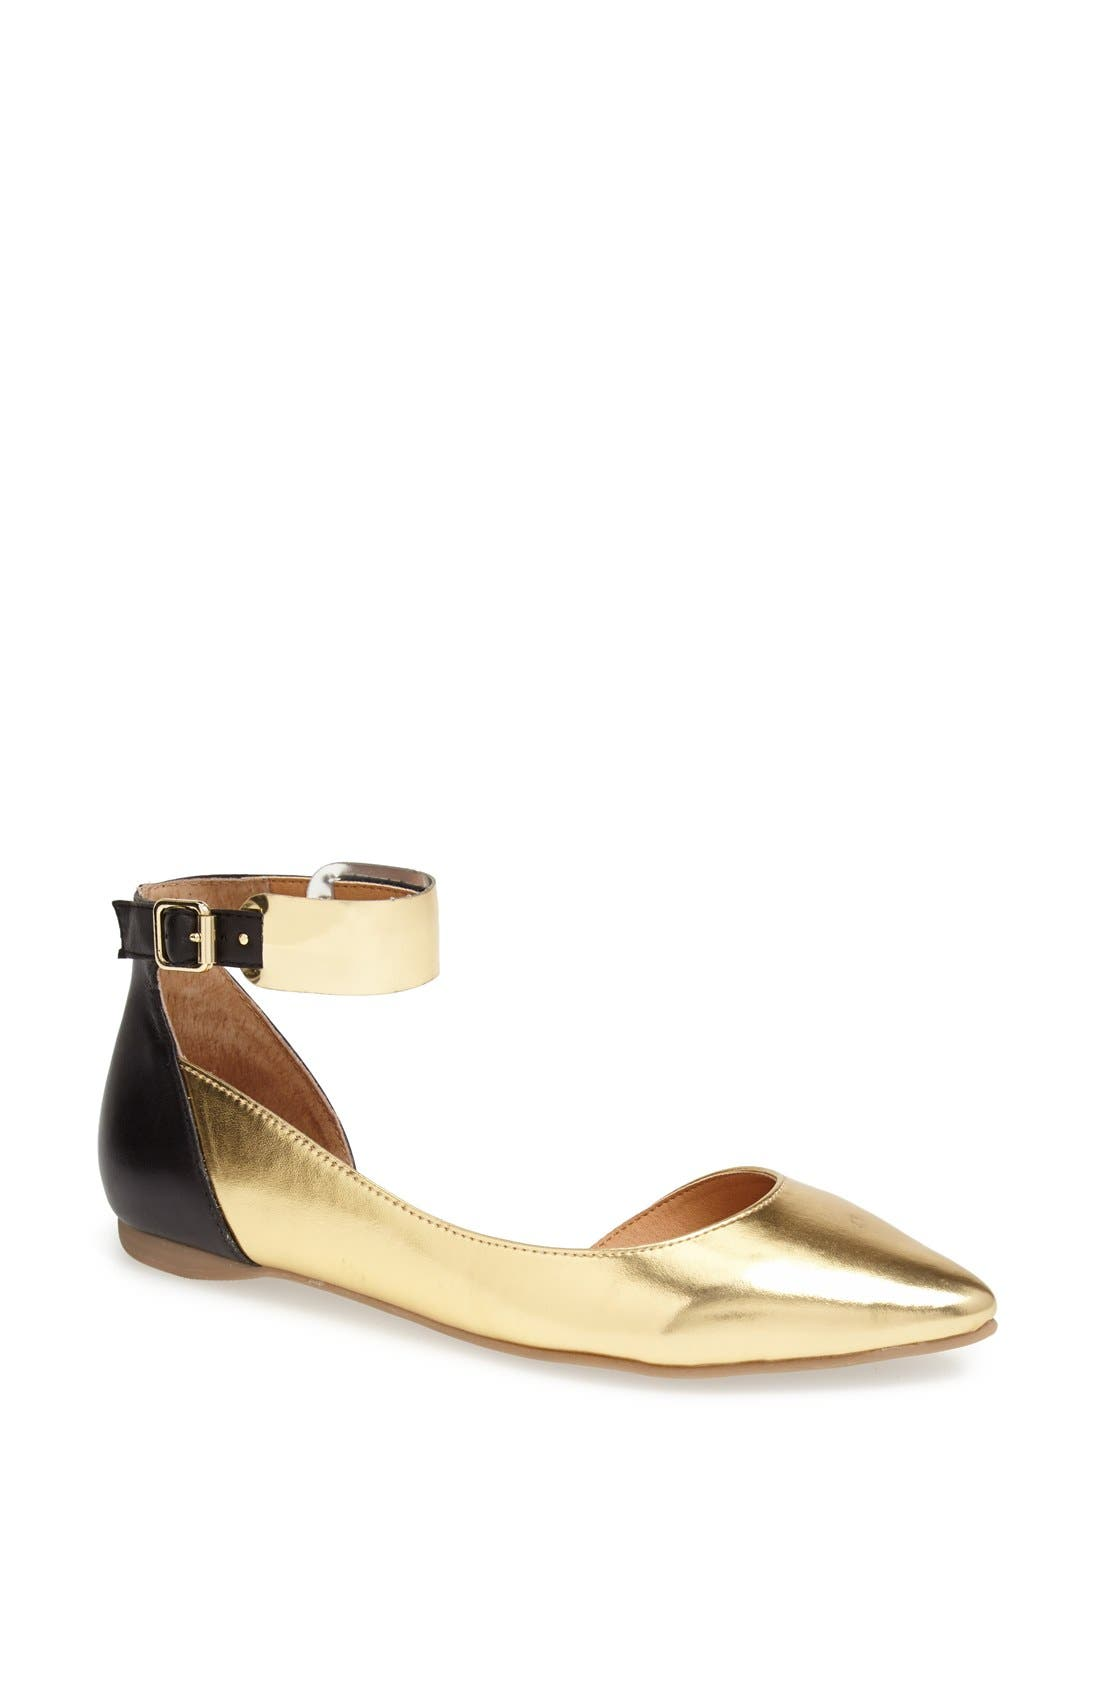 Alternate Image 1 Selected - Kenneth Cole Reaction 'Pose Off 2' Cuff Ankle Strap Half d'Orsay Sandal